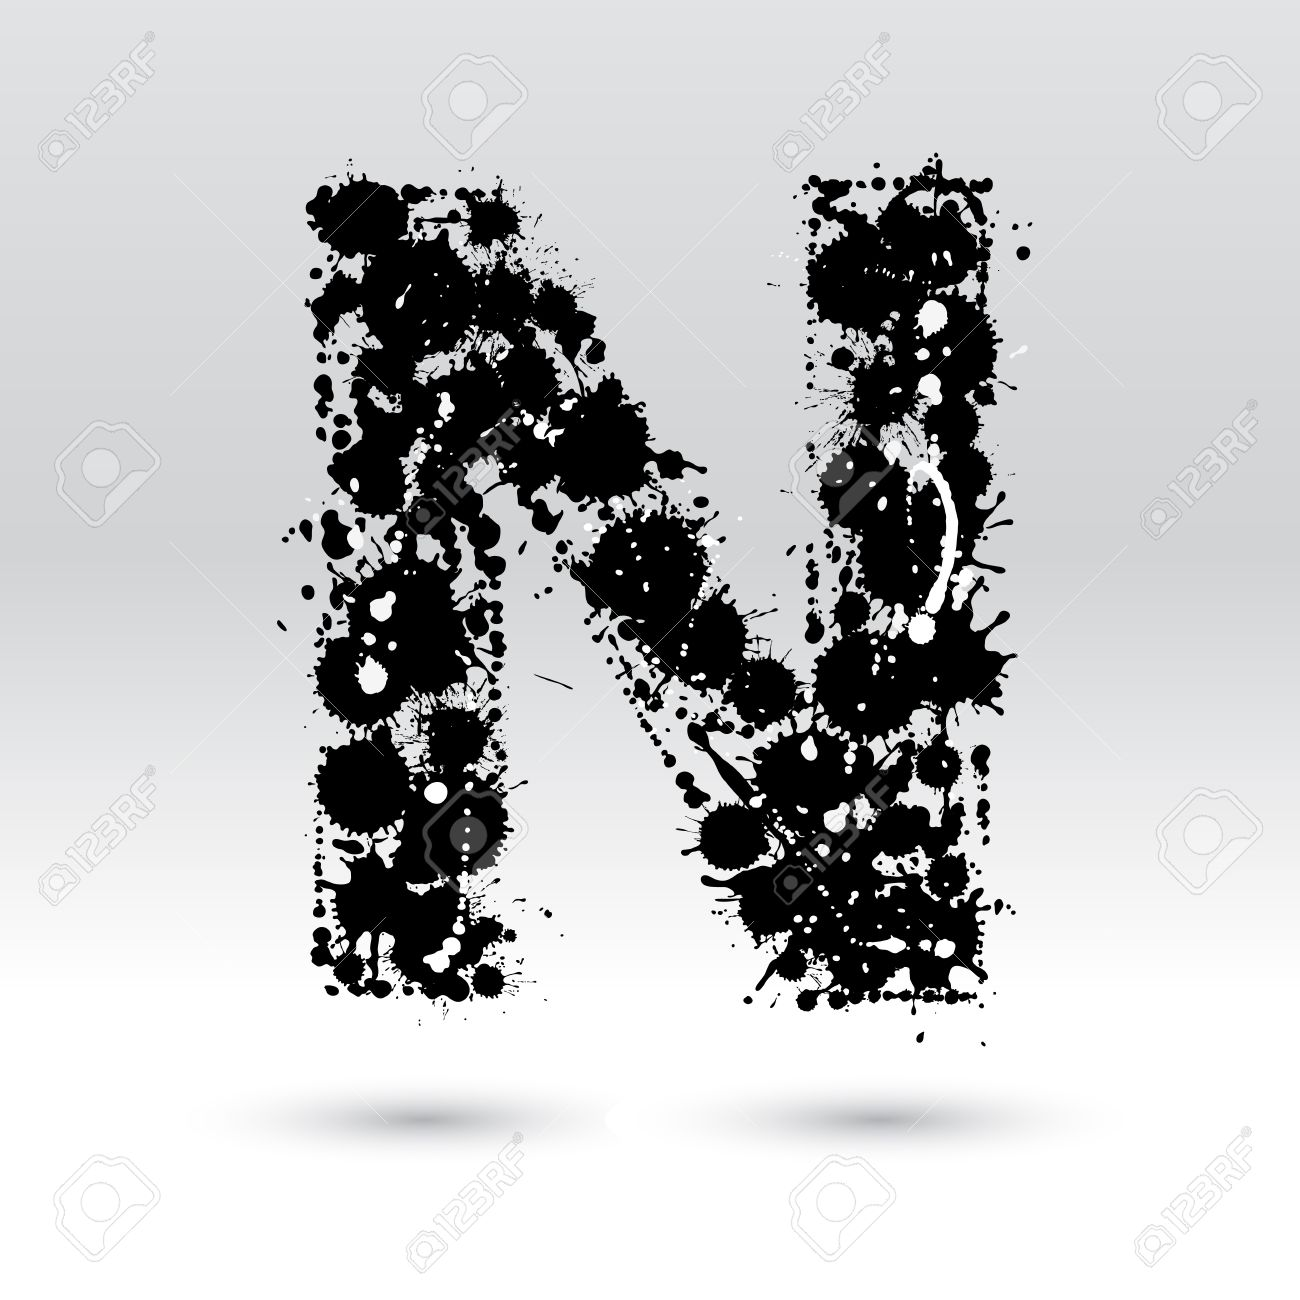 Letter N Formed By Black And White Ink Blots Royalty Free Cliparts